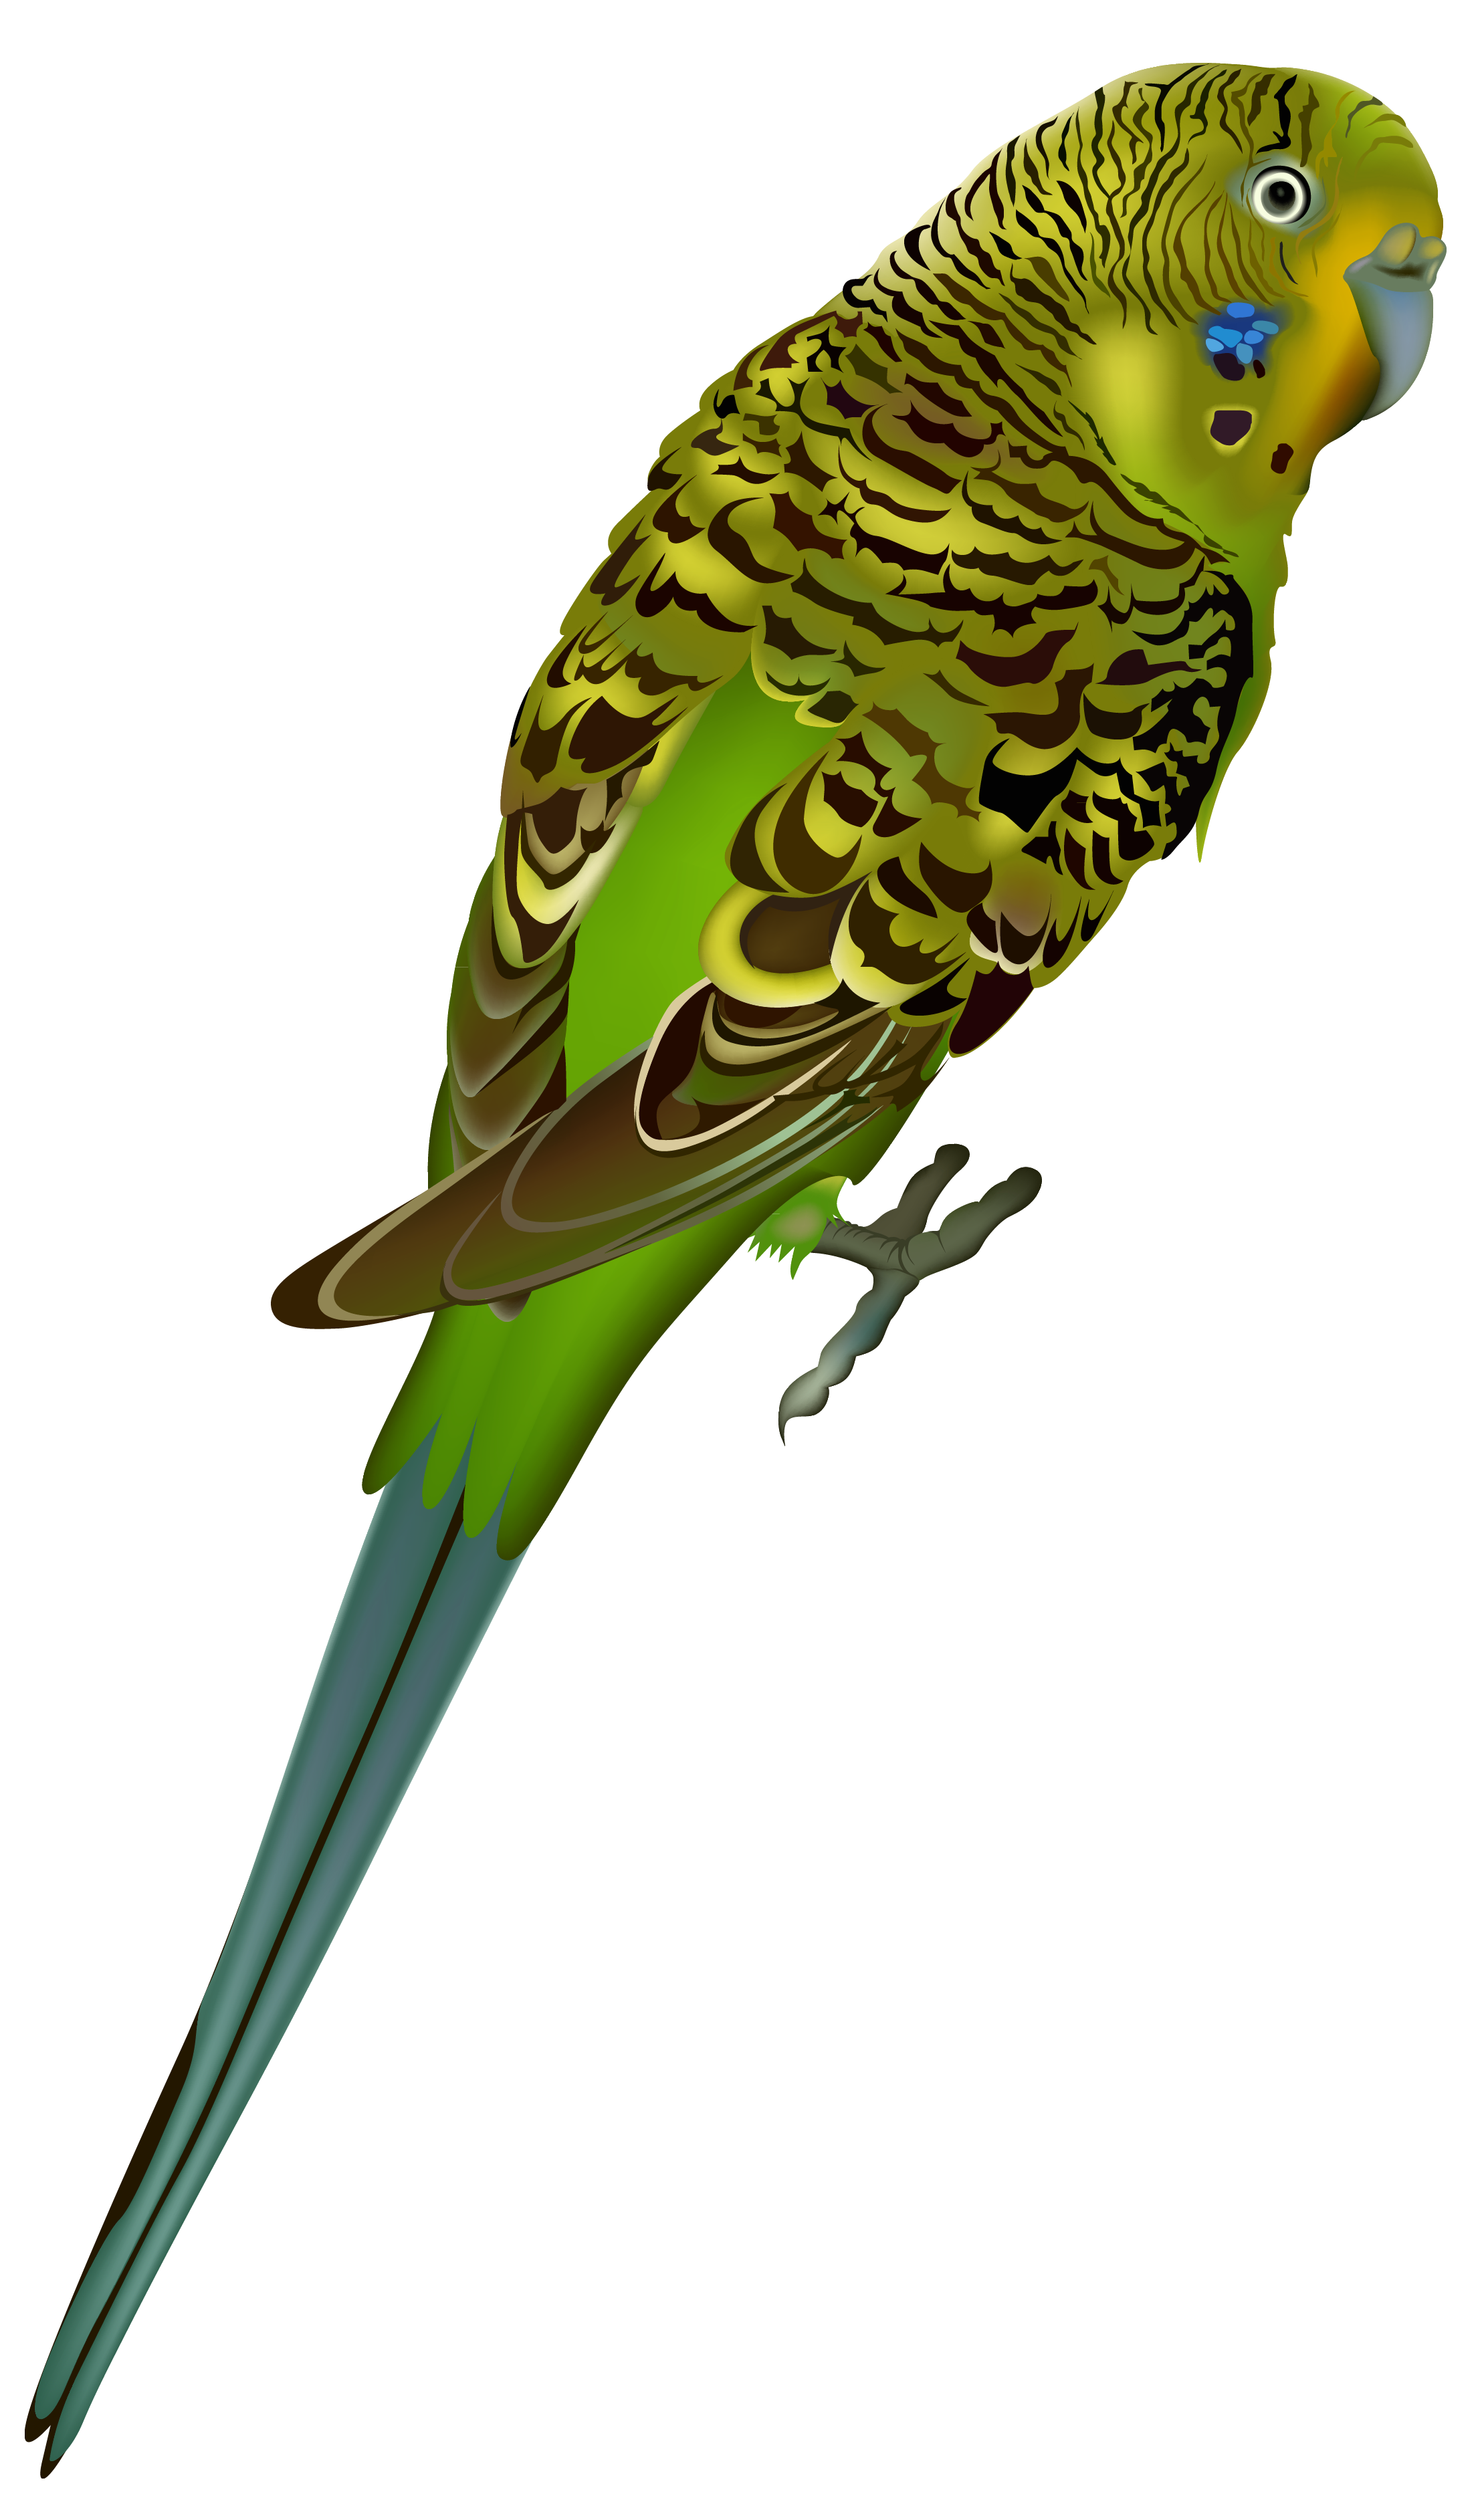 svg library library Reptile clipart swamp bird. Cuckoo parrot free on